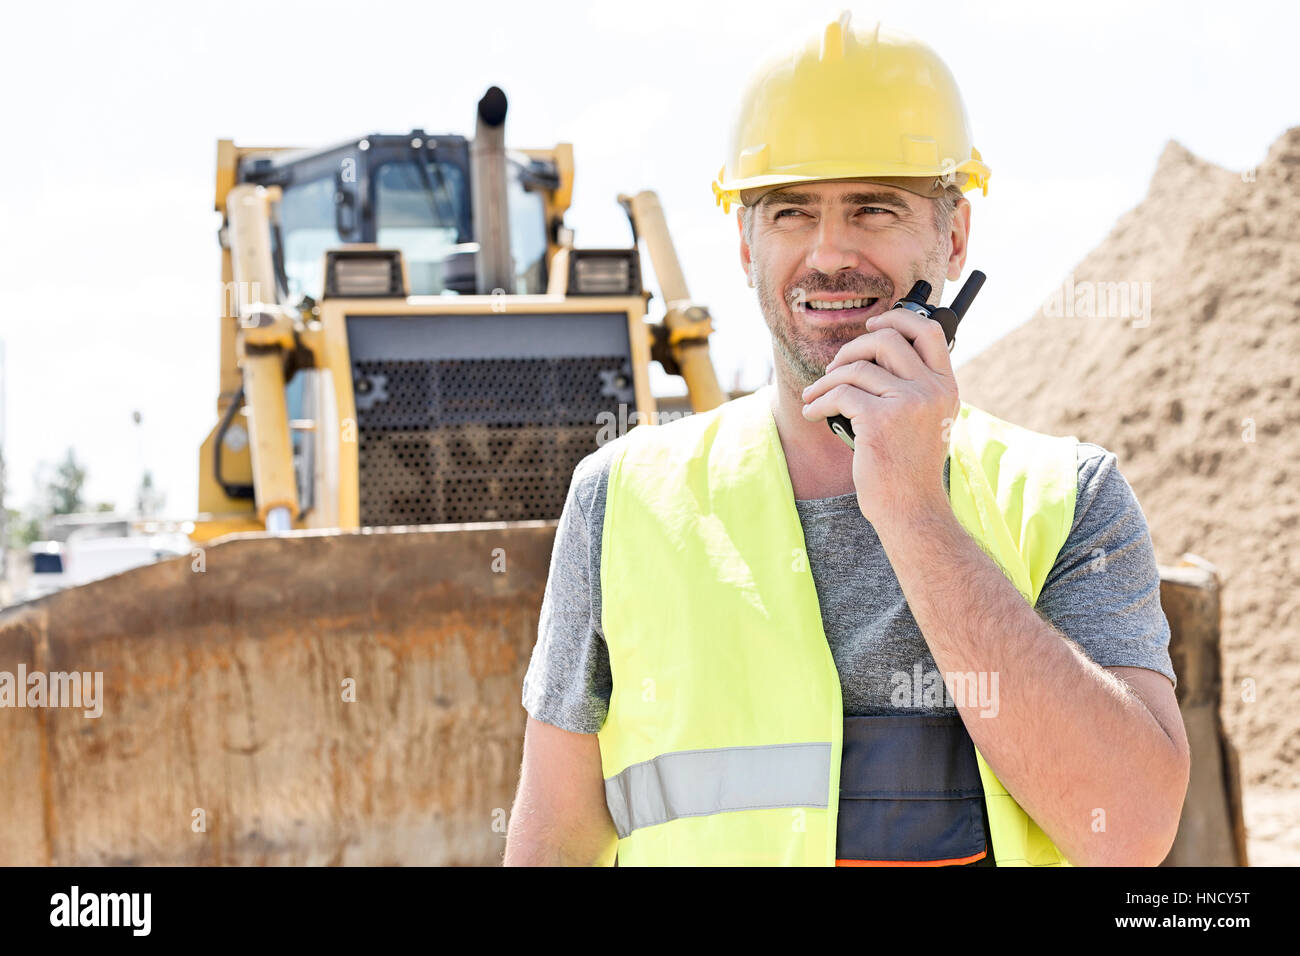 Confident supervisor using walkie-talkie at construction site - Stock Image